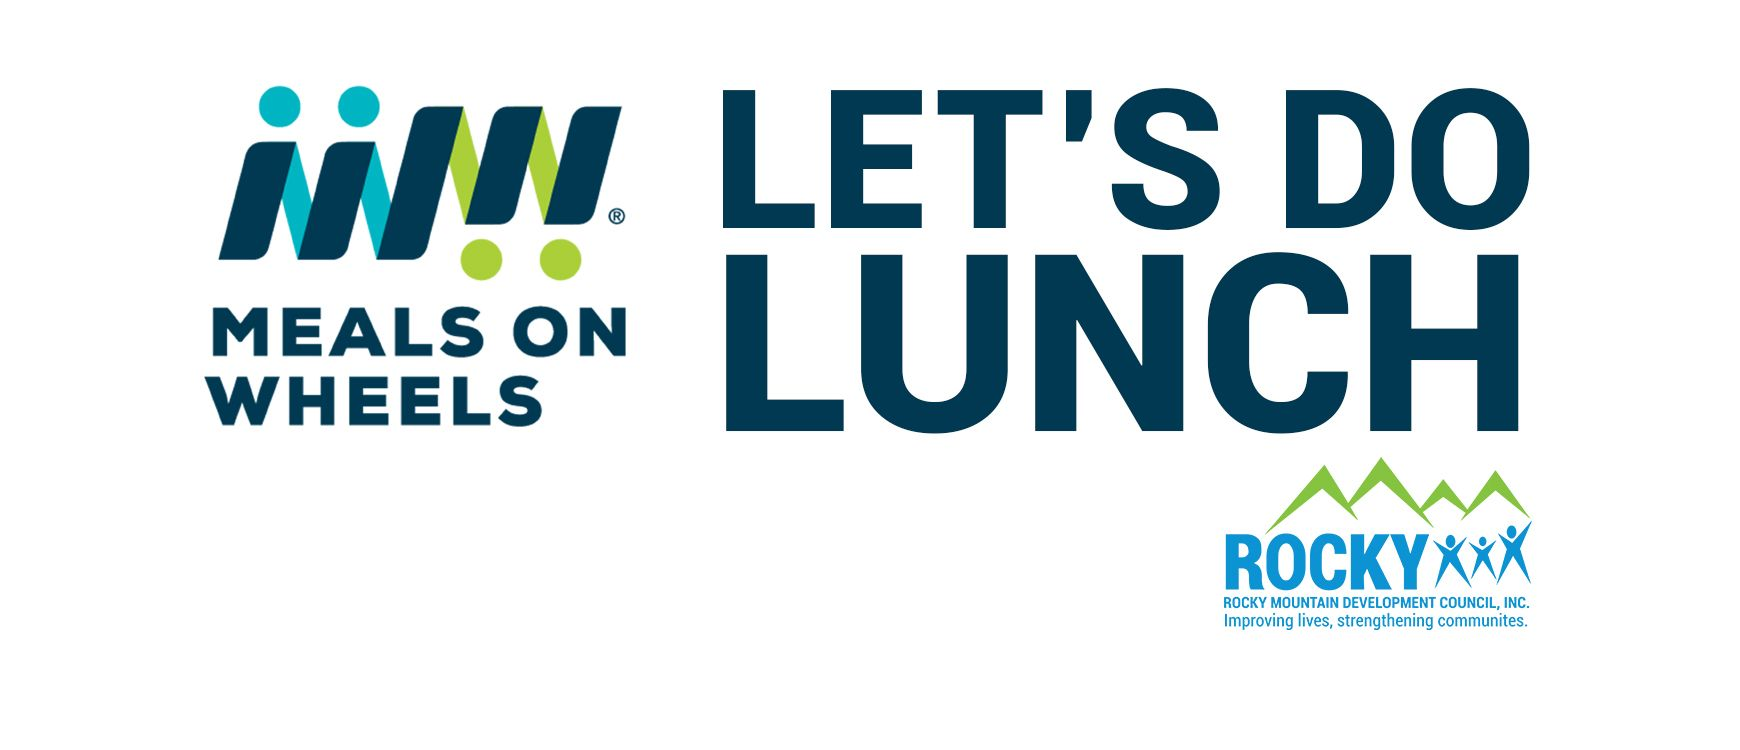 HAVE YOU CONSIDERED VOLUNTEERING FOR MEALS ON WHEELS?